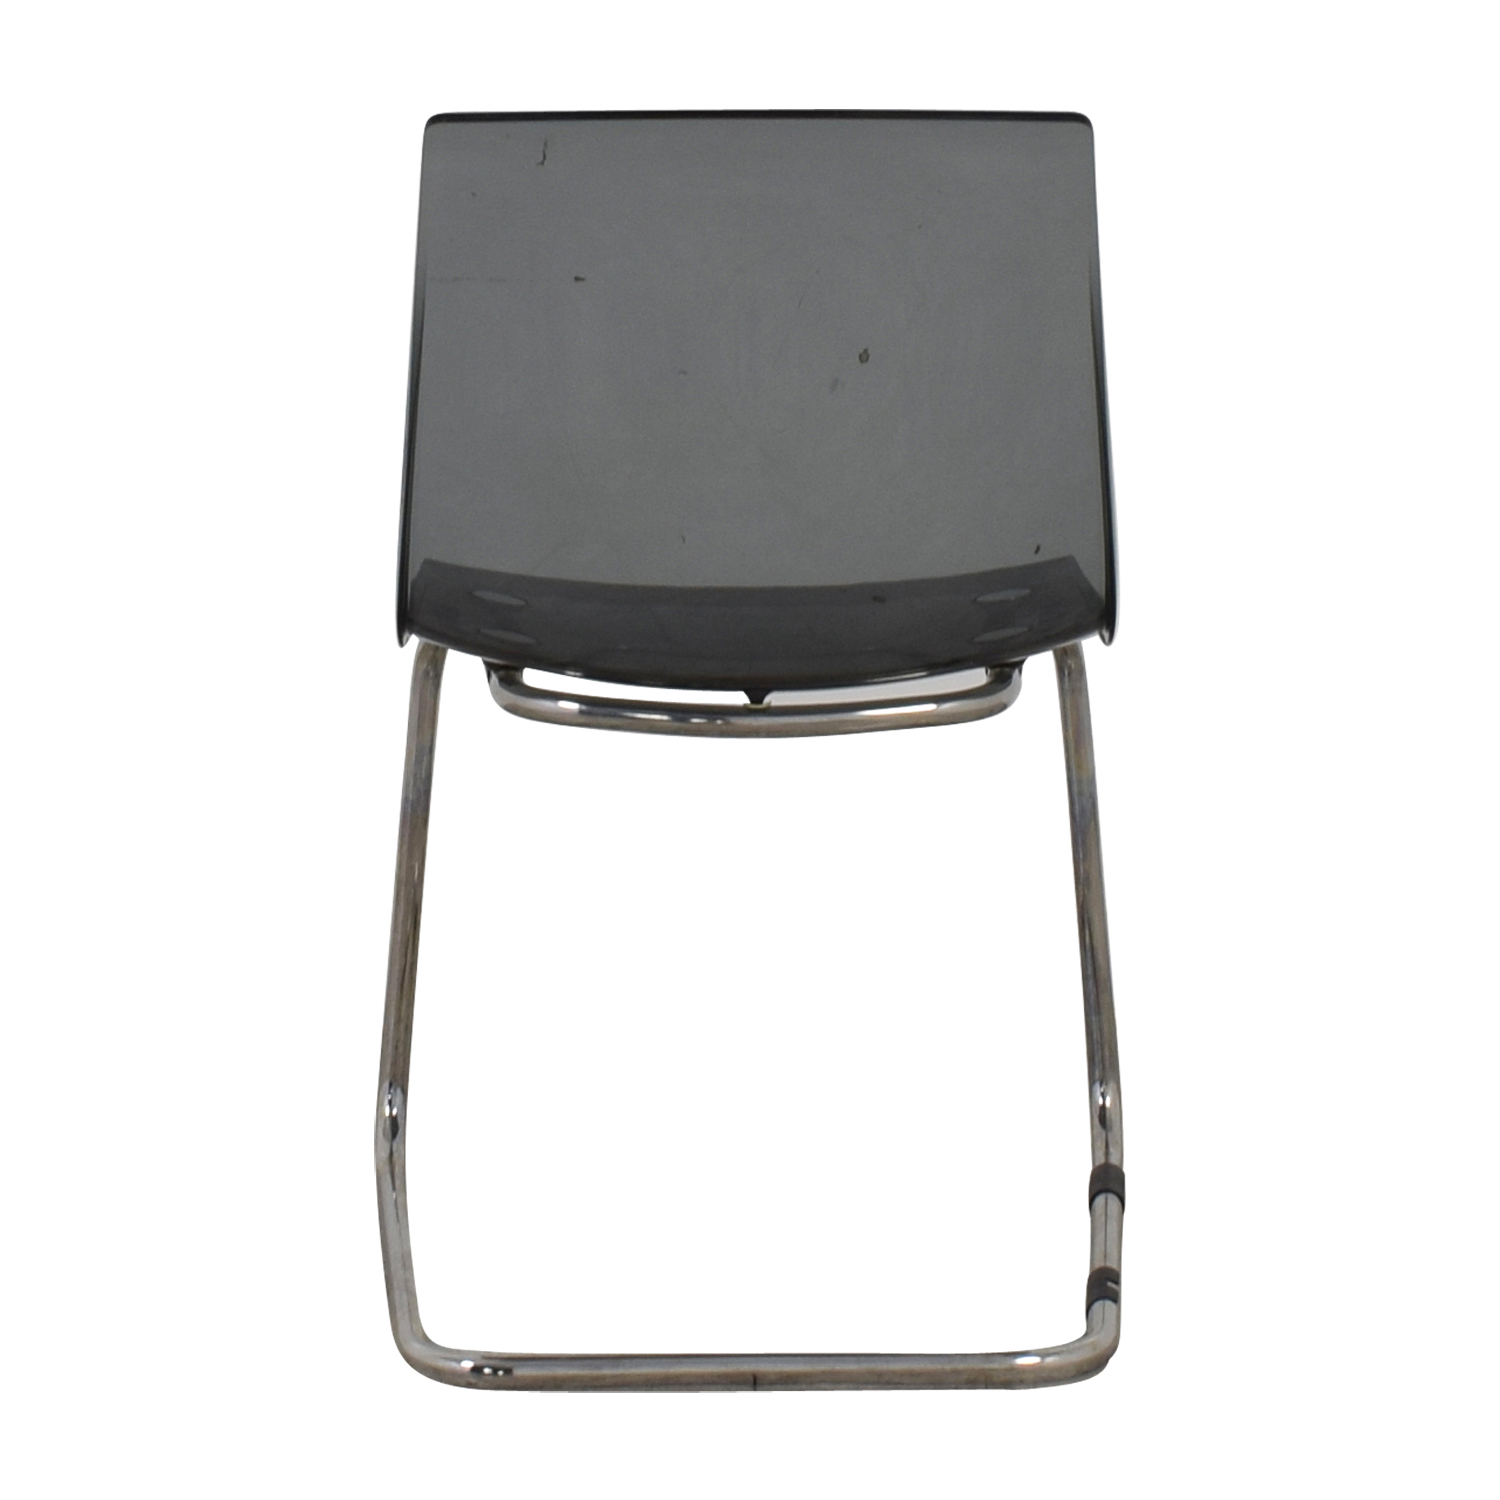 Ikea Black Chair 81 Off Ikea Ikea Tobias Sheer Black Chair Chairs